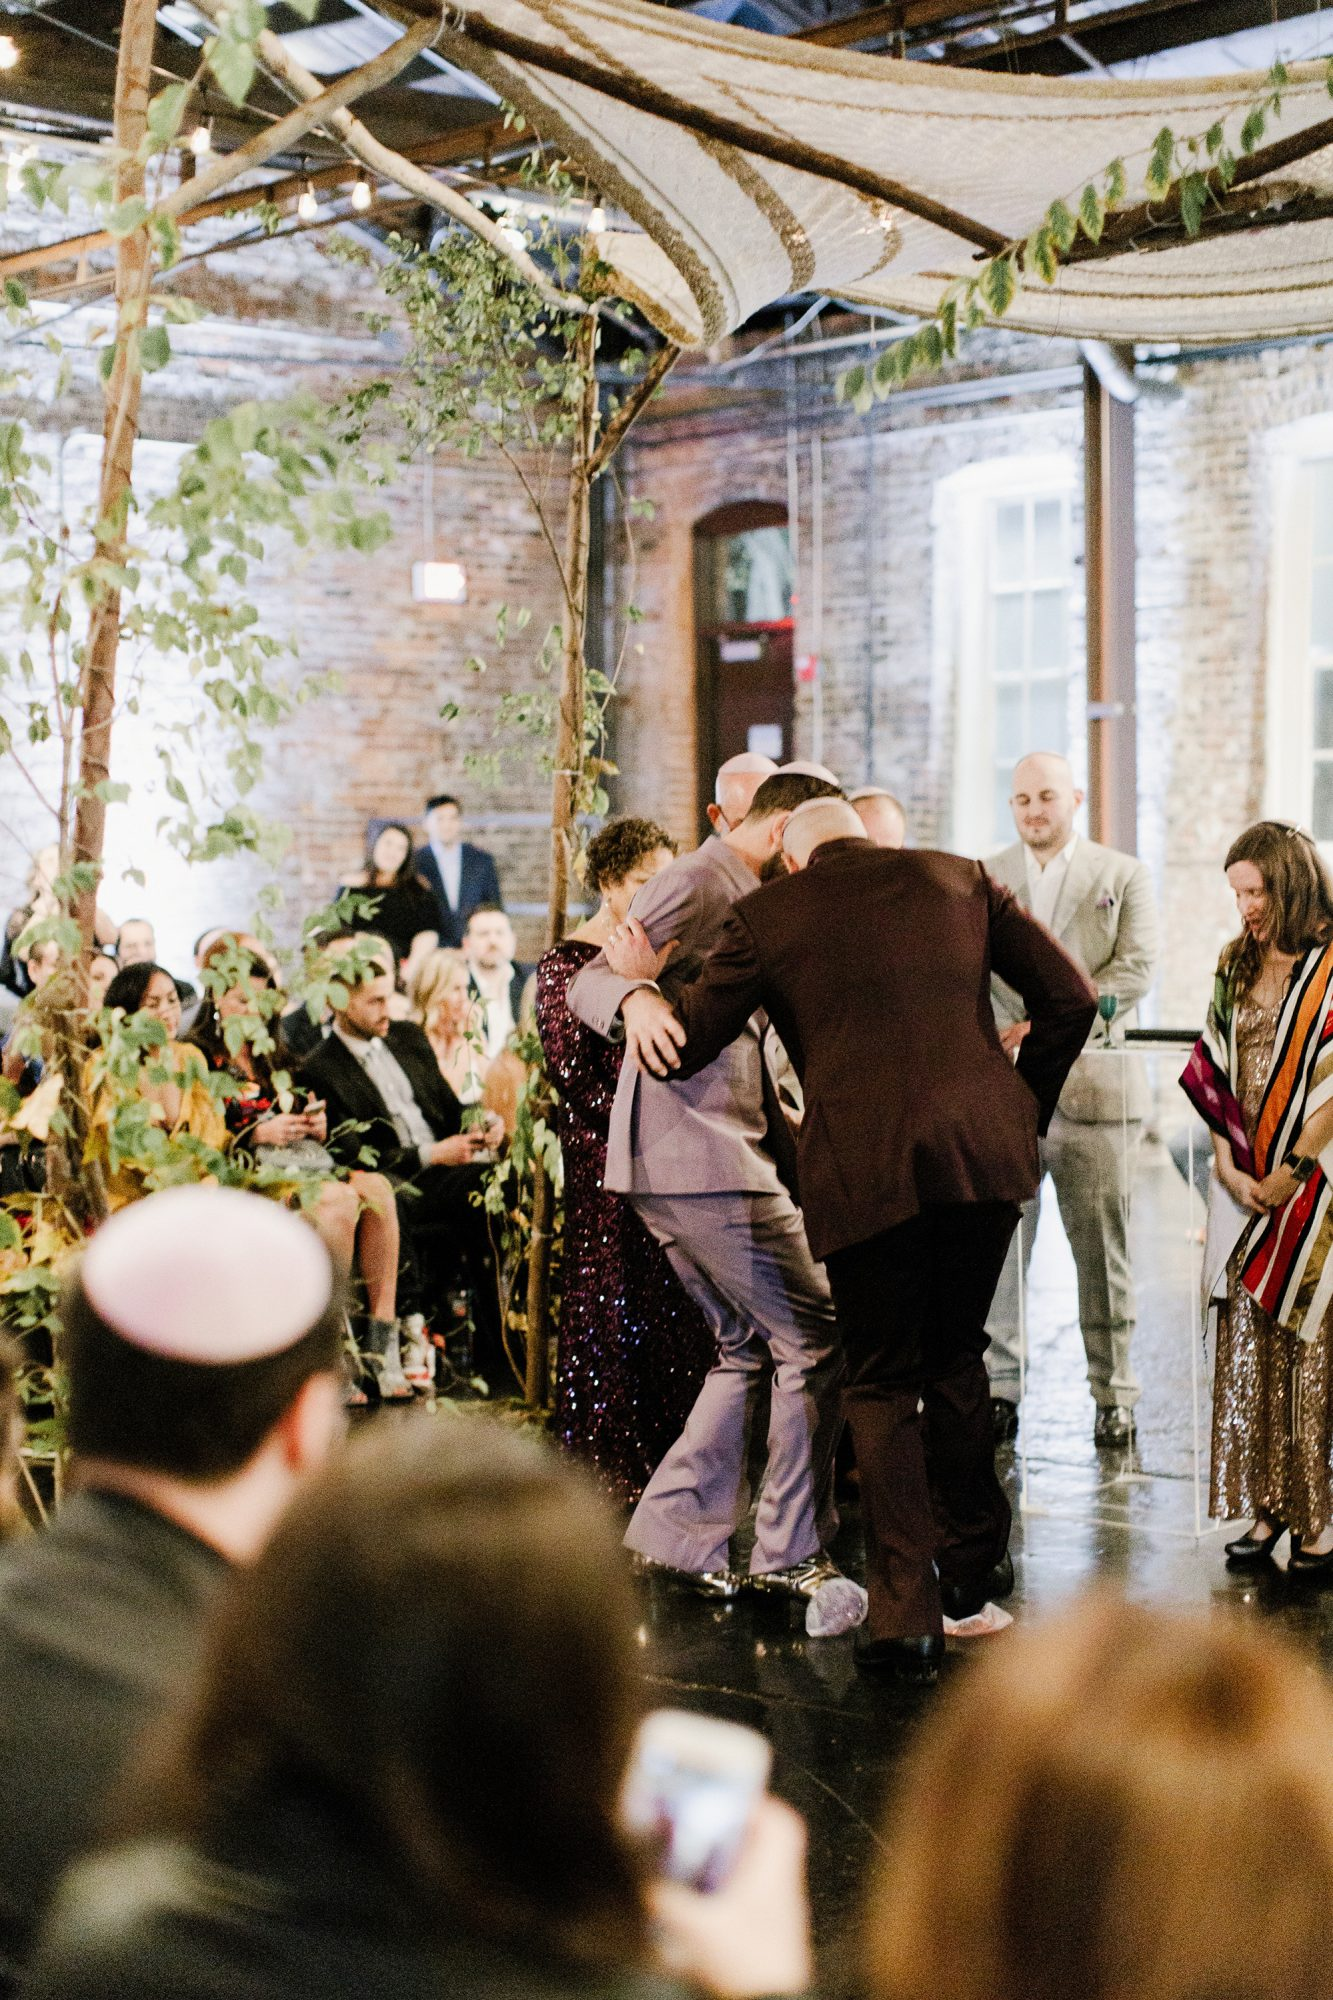 micah jason wedding wedding ceremony glass same sex jewish